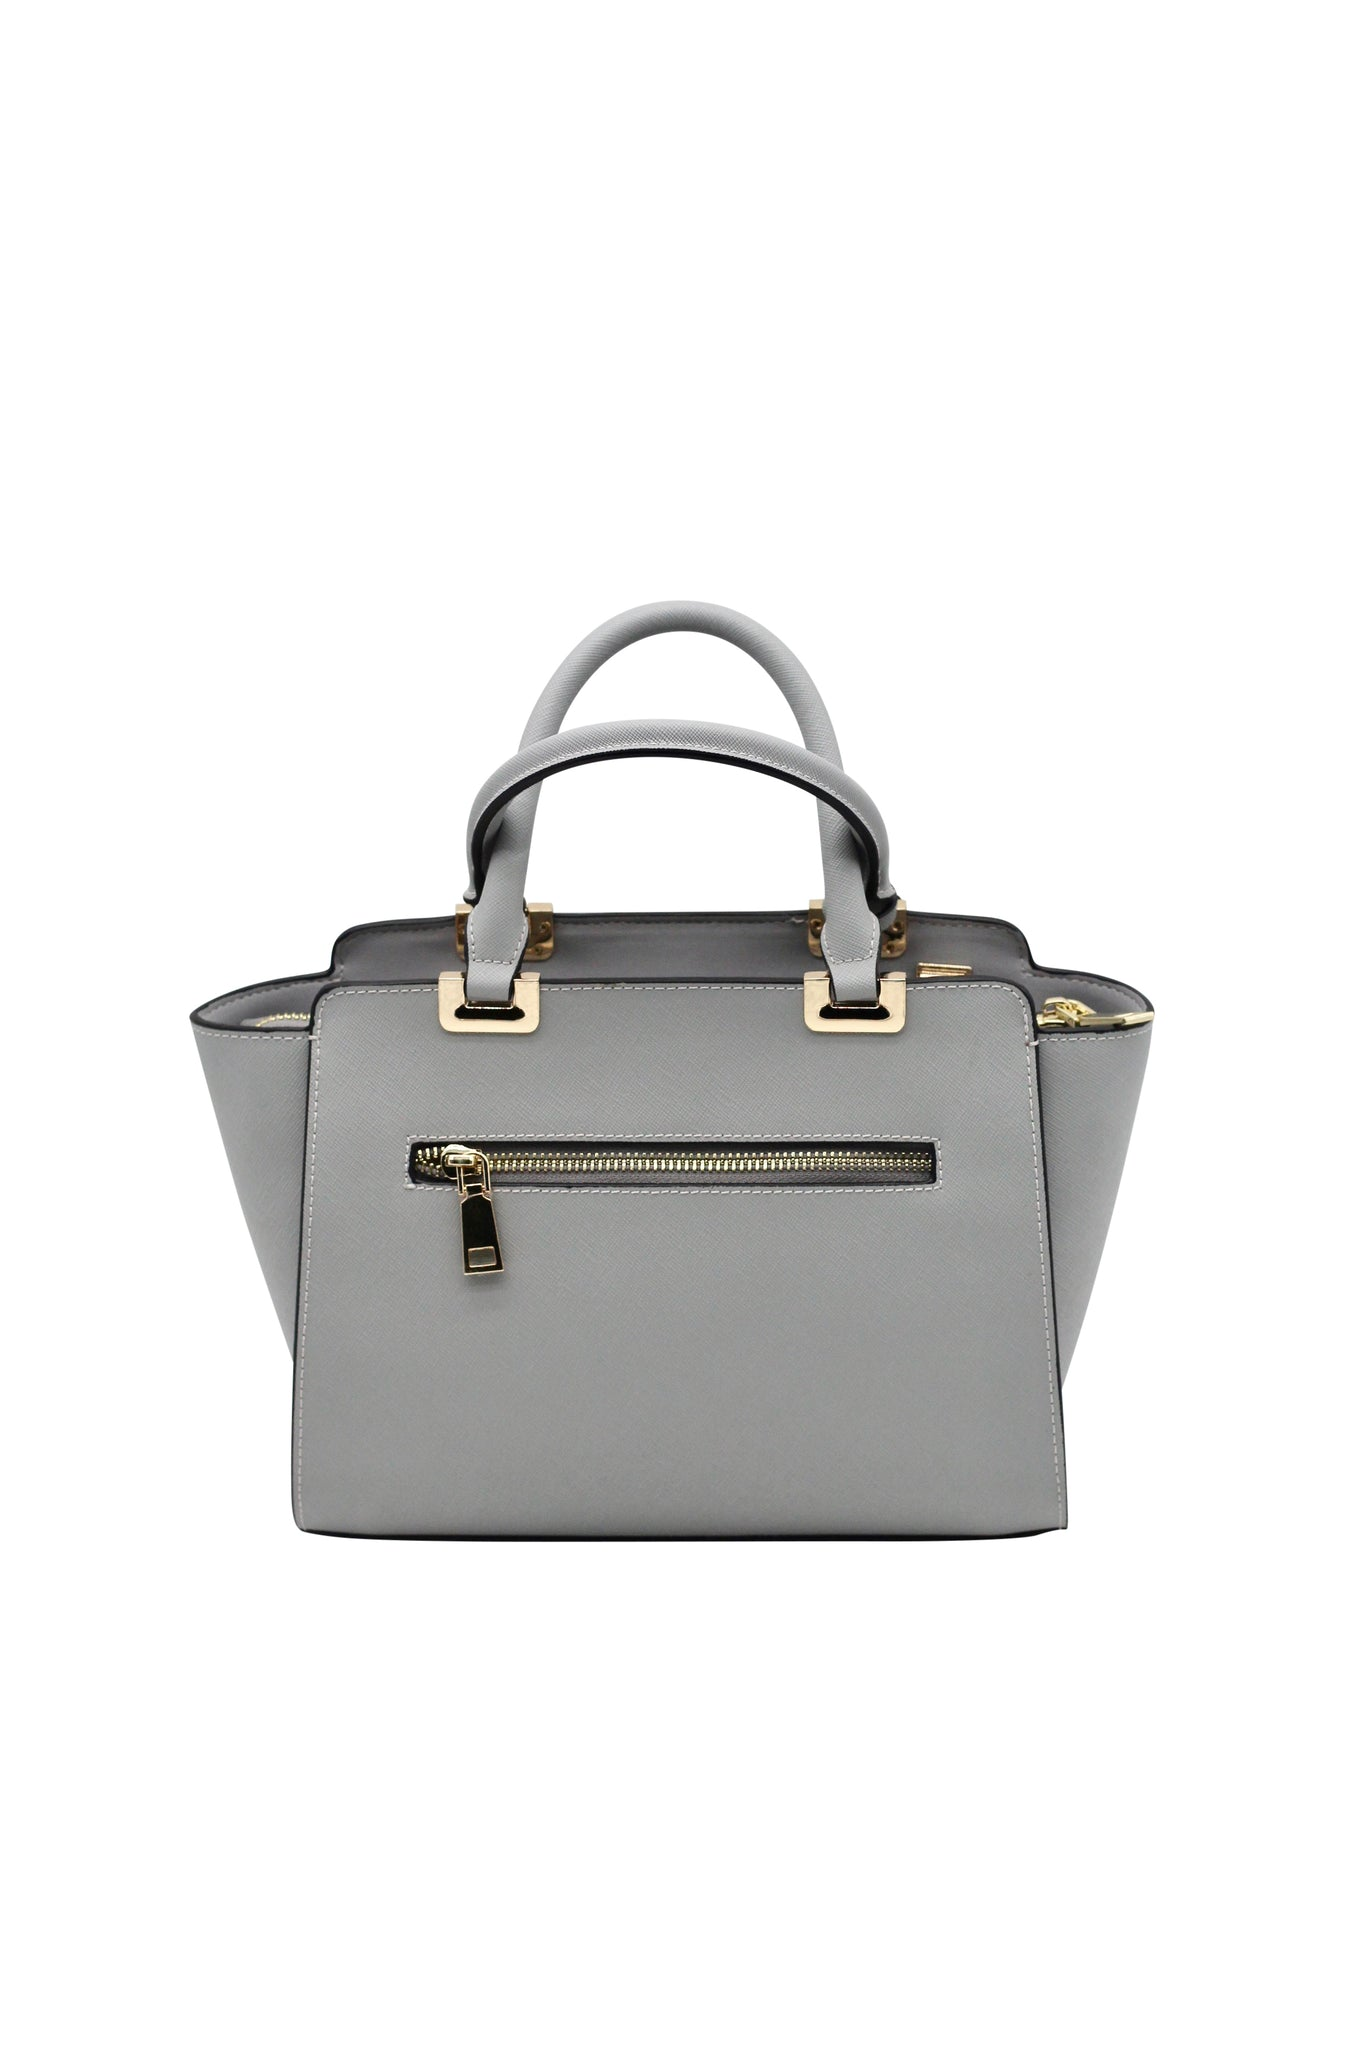 Miss Audrey Bag - Grey